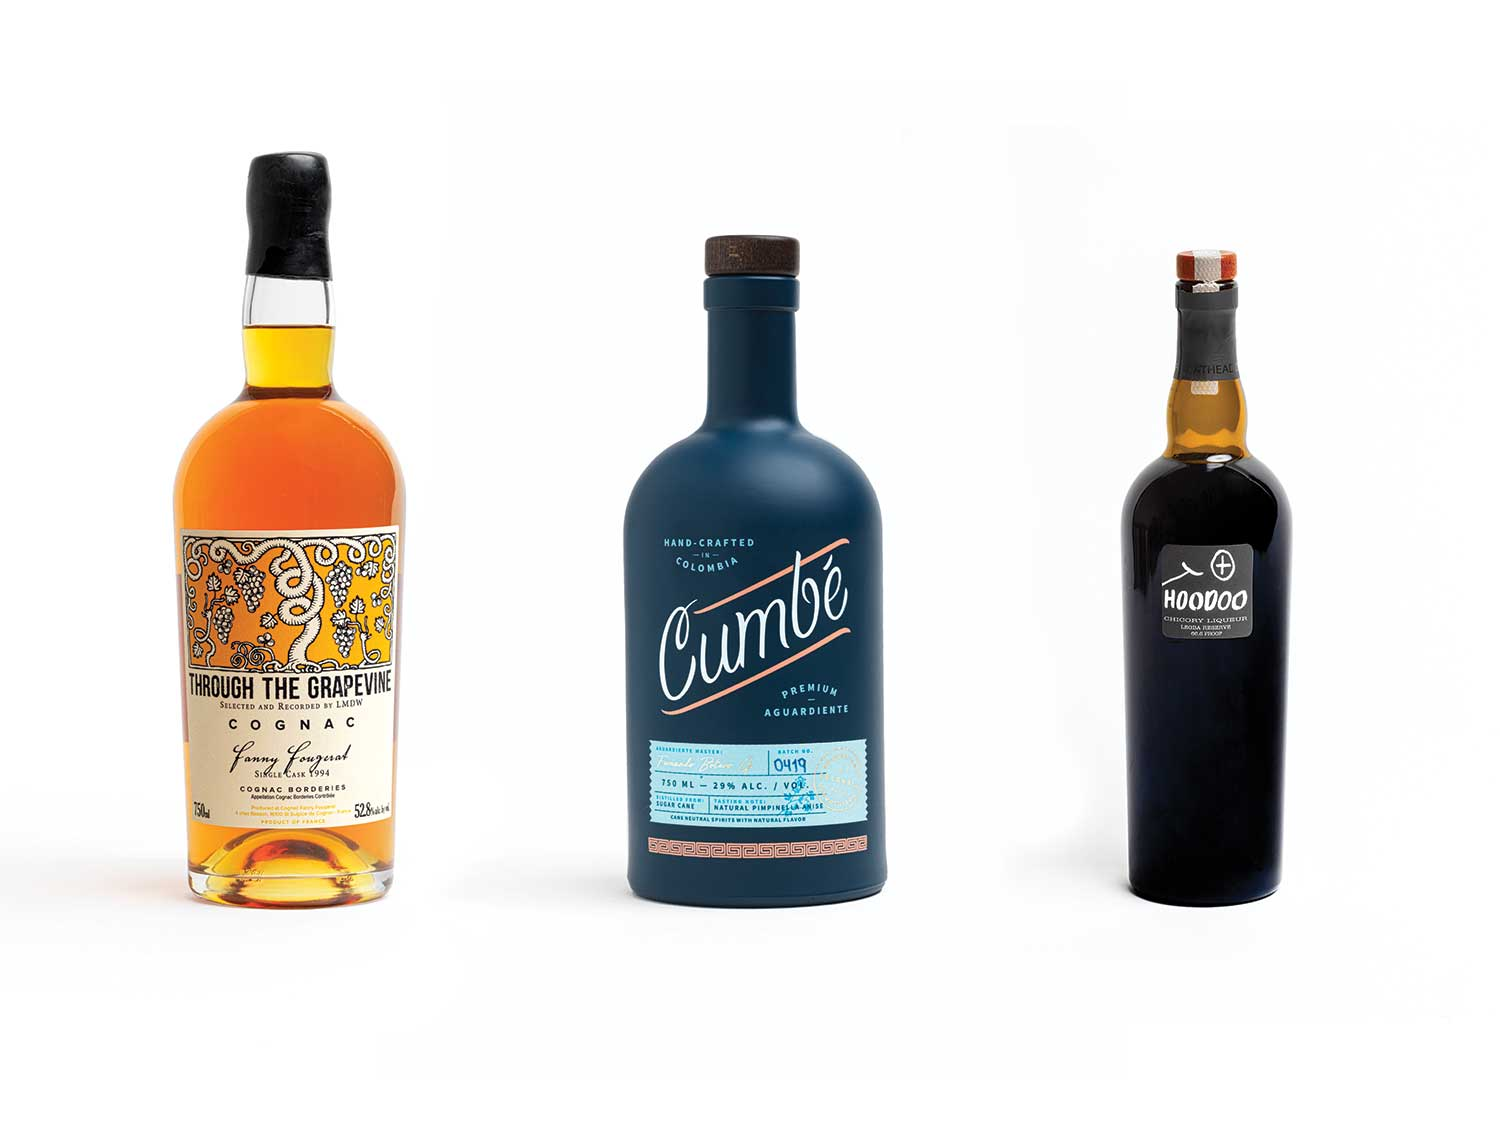 These three bottles are our new favorite after dinner drinks